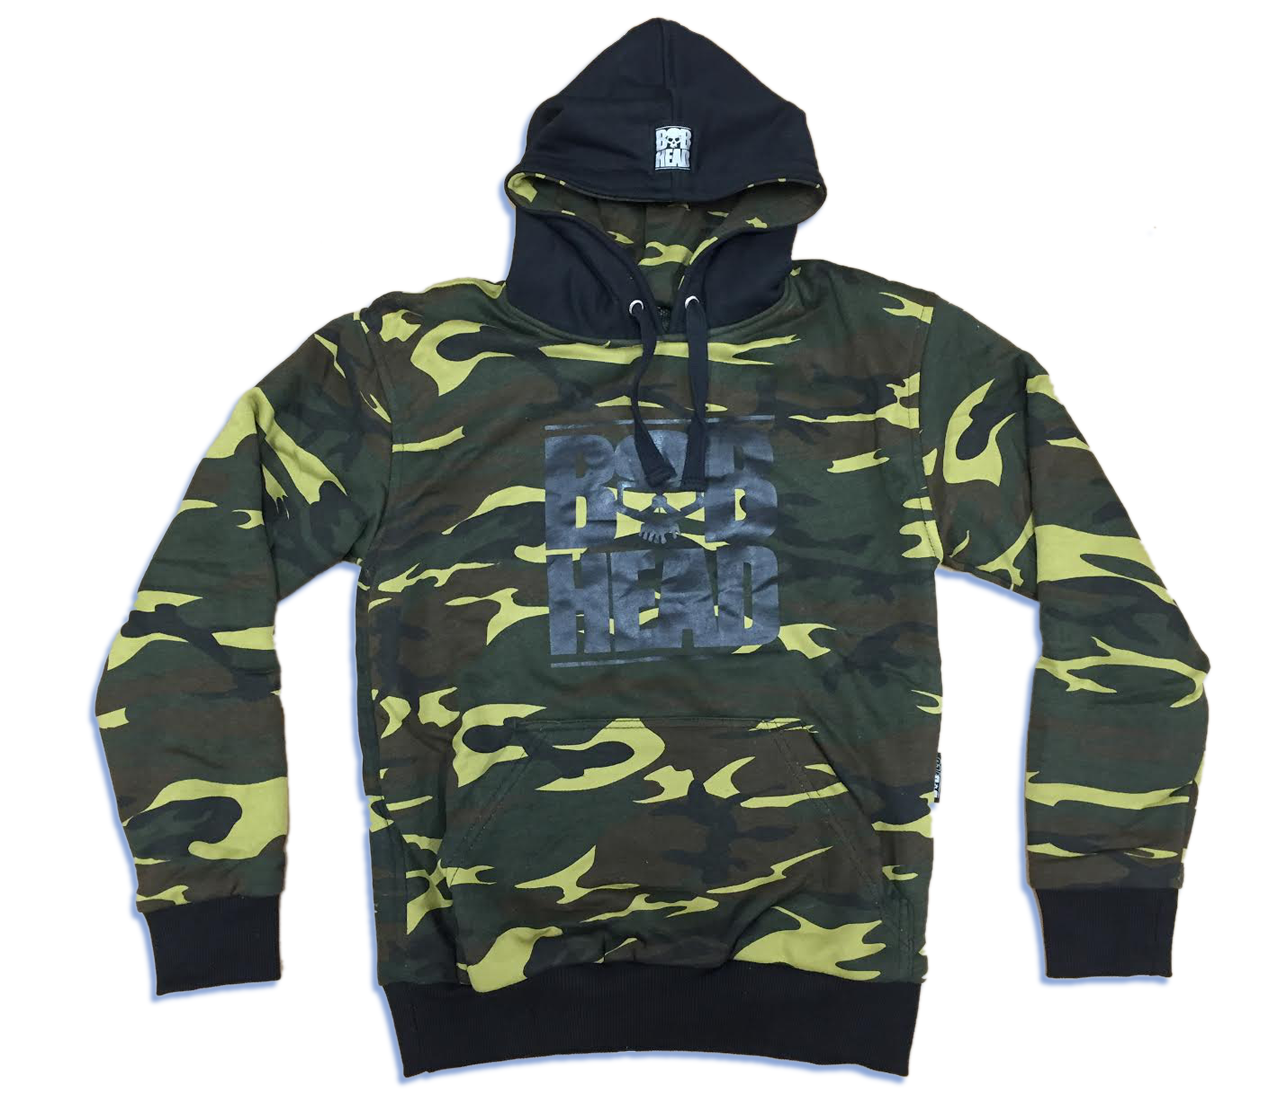 27f5b4b6a39 BOBHEAD Camo Hoodie – welcome to the official BOBHEAD website